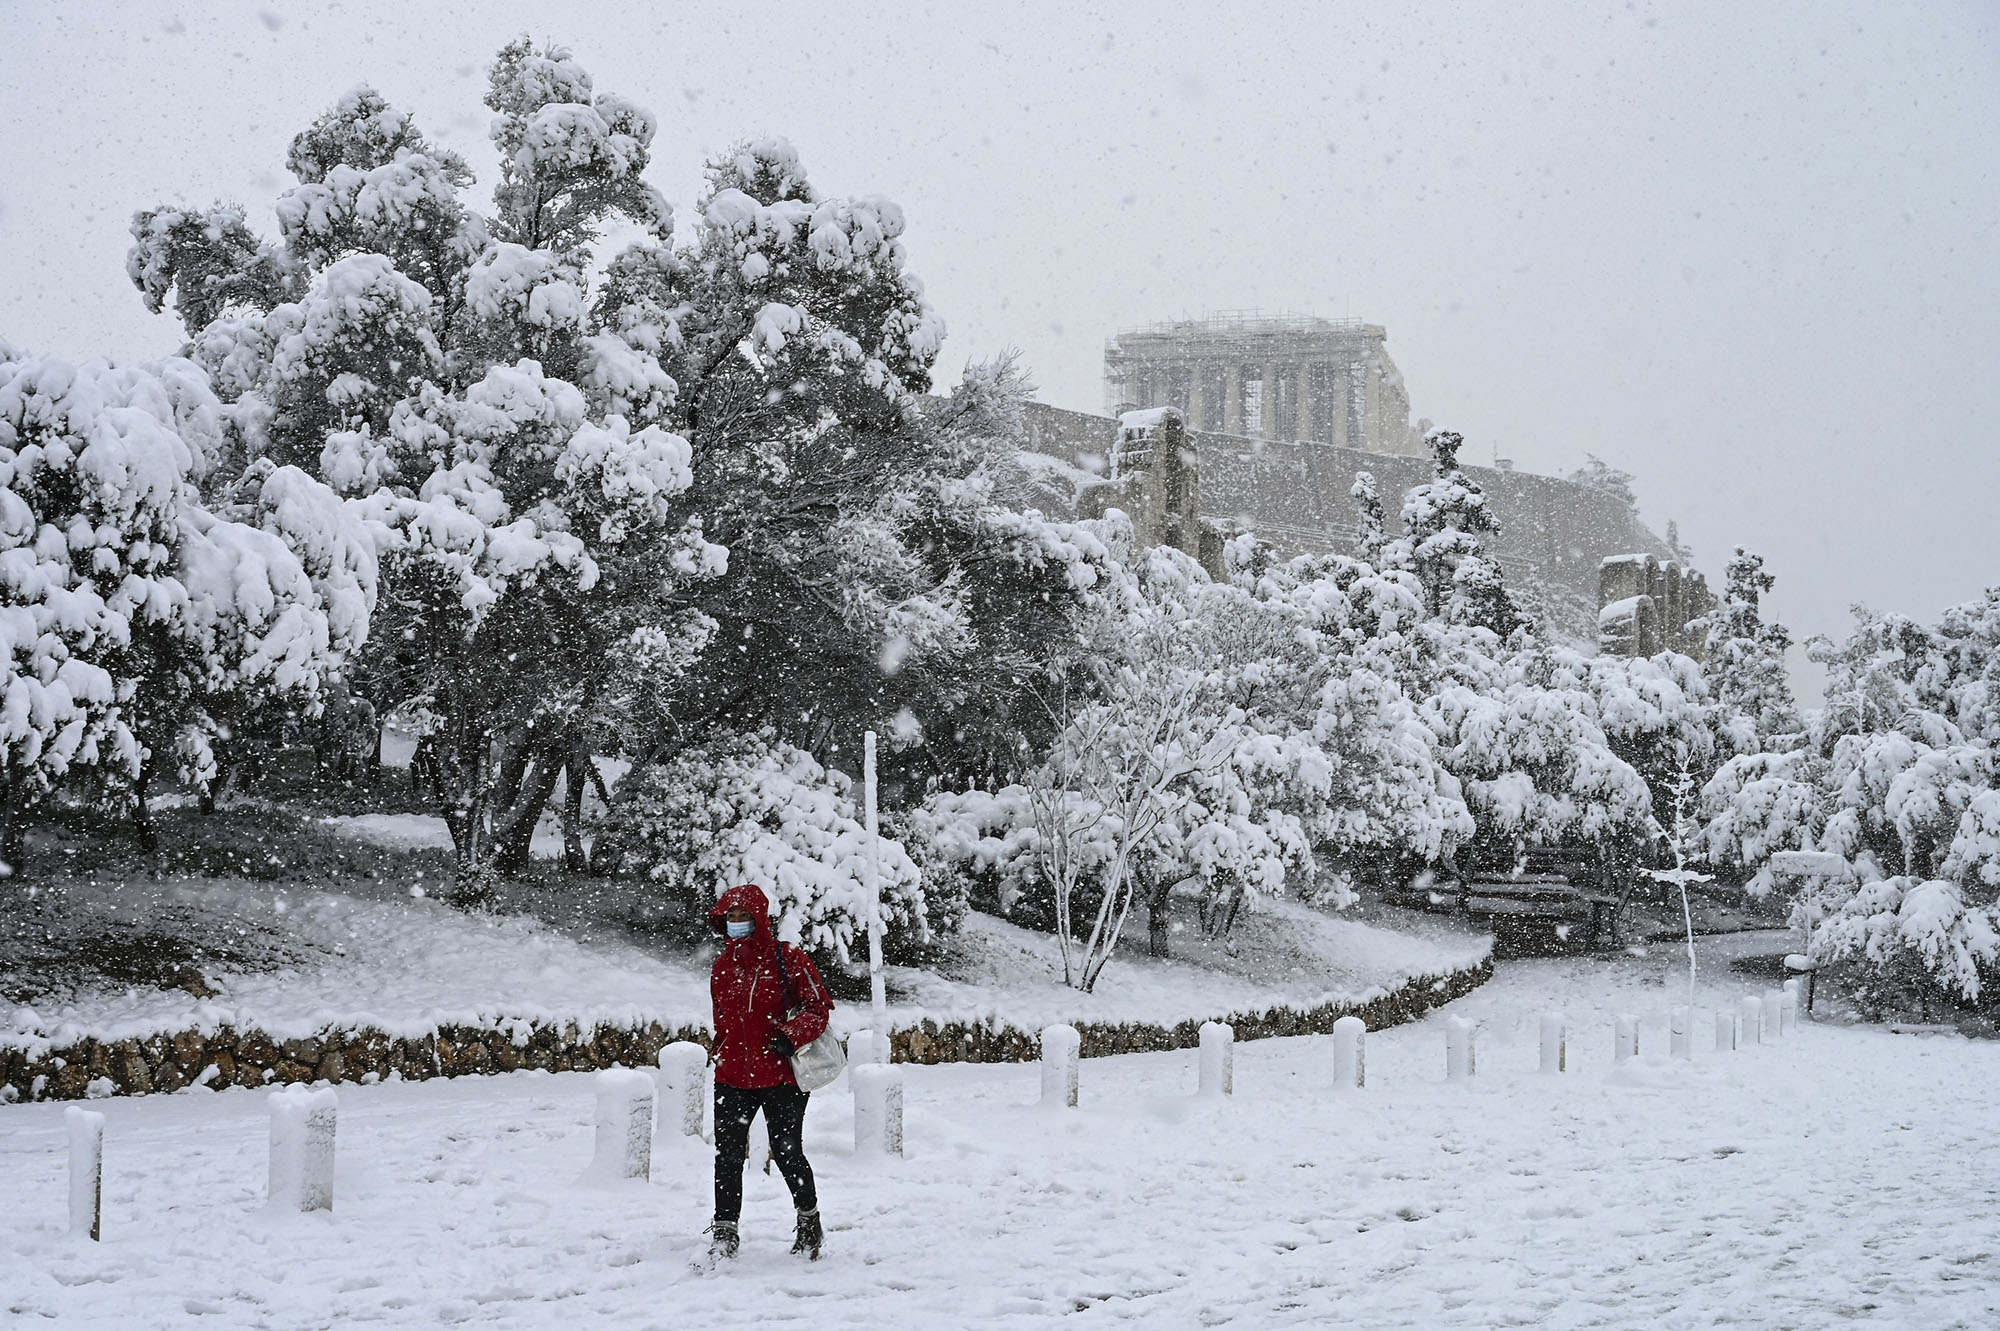 A woman walks past the Parthenon temple during heavy snowfall in Athens, Greece, on February 16, 2021.